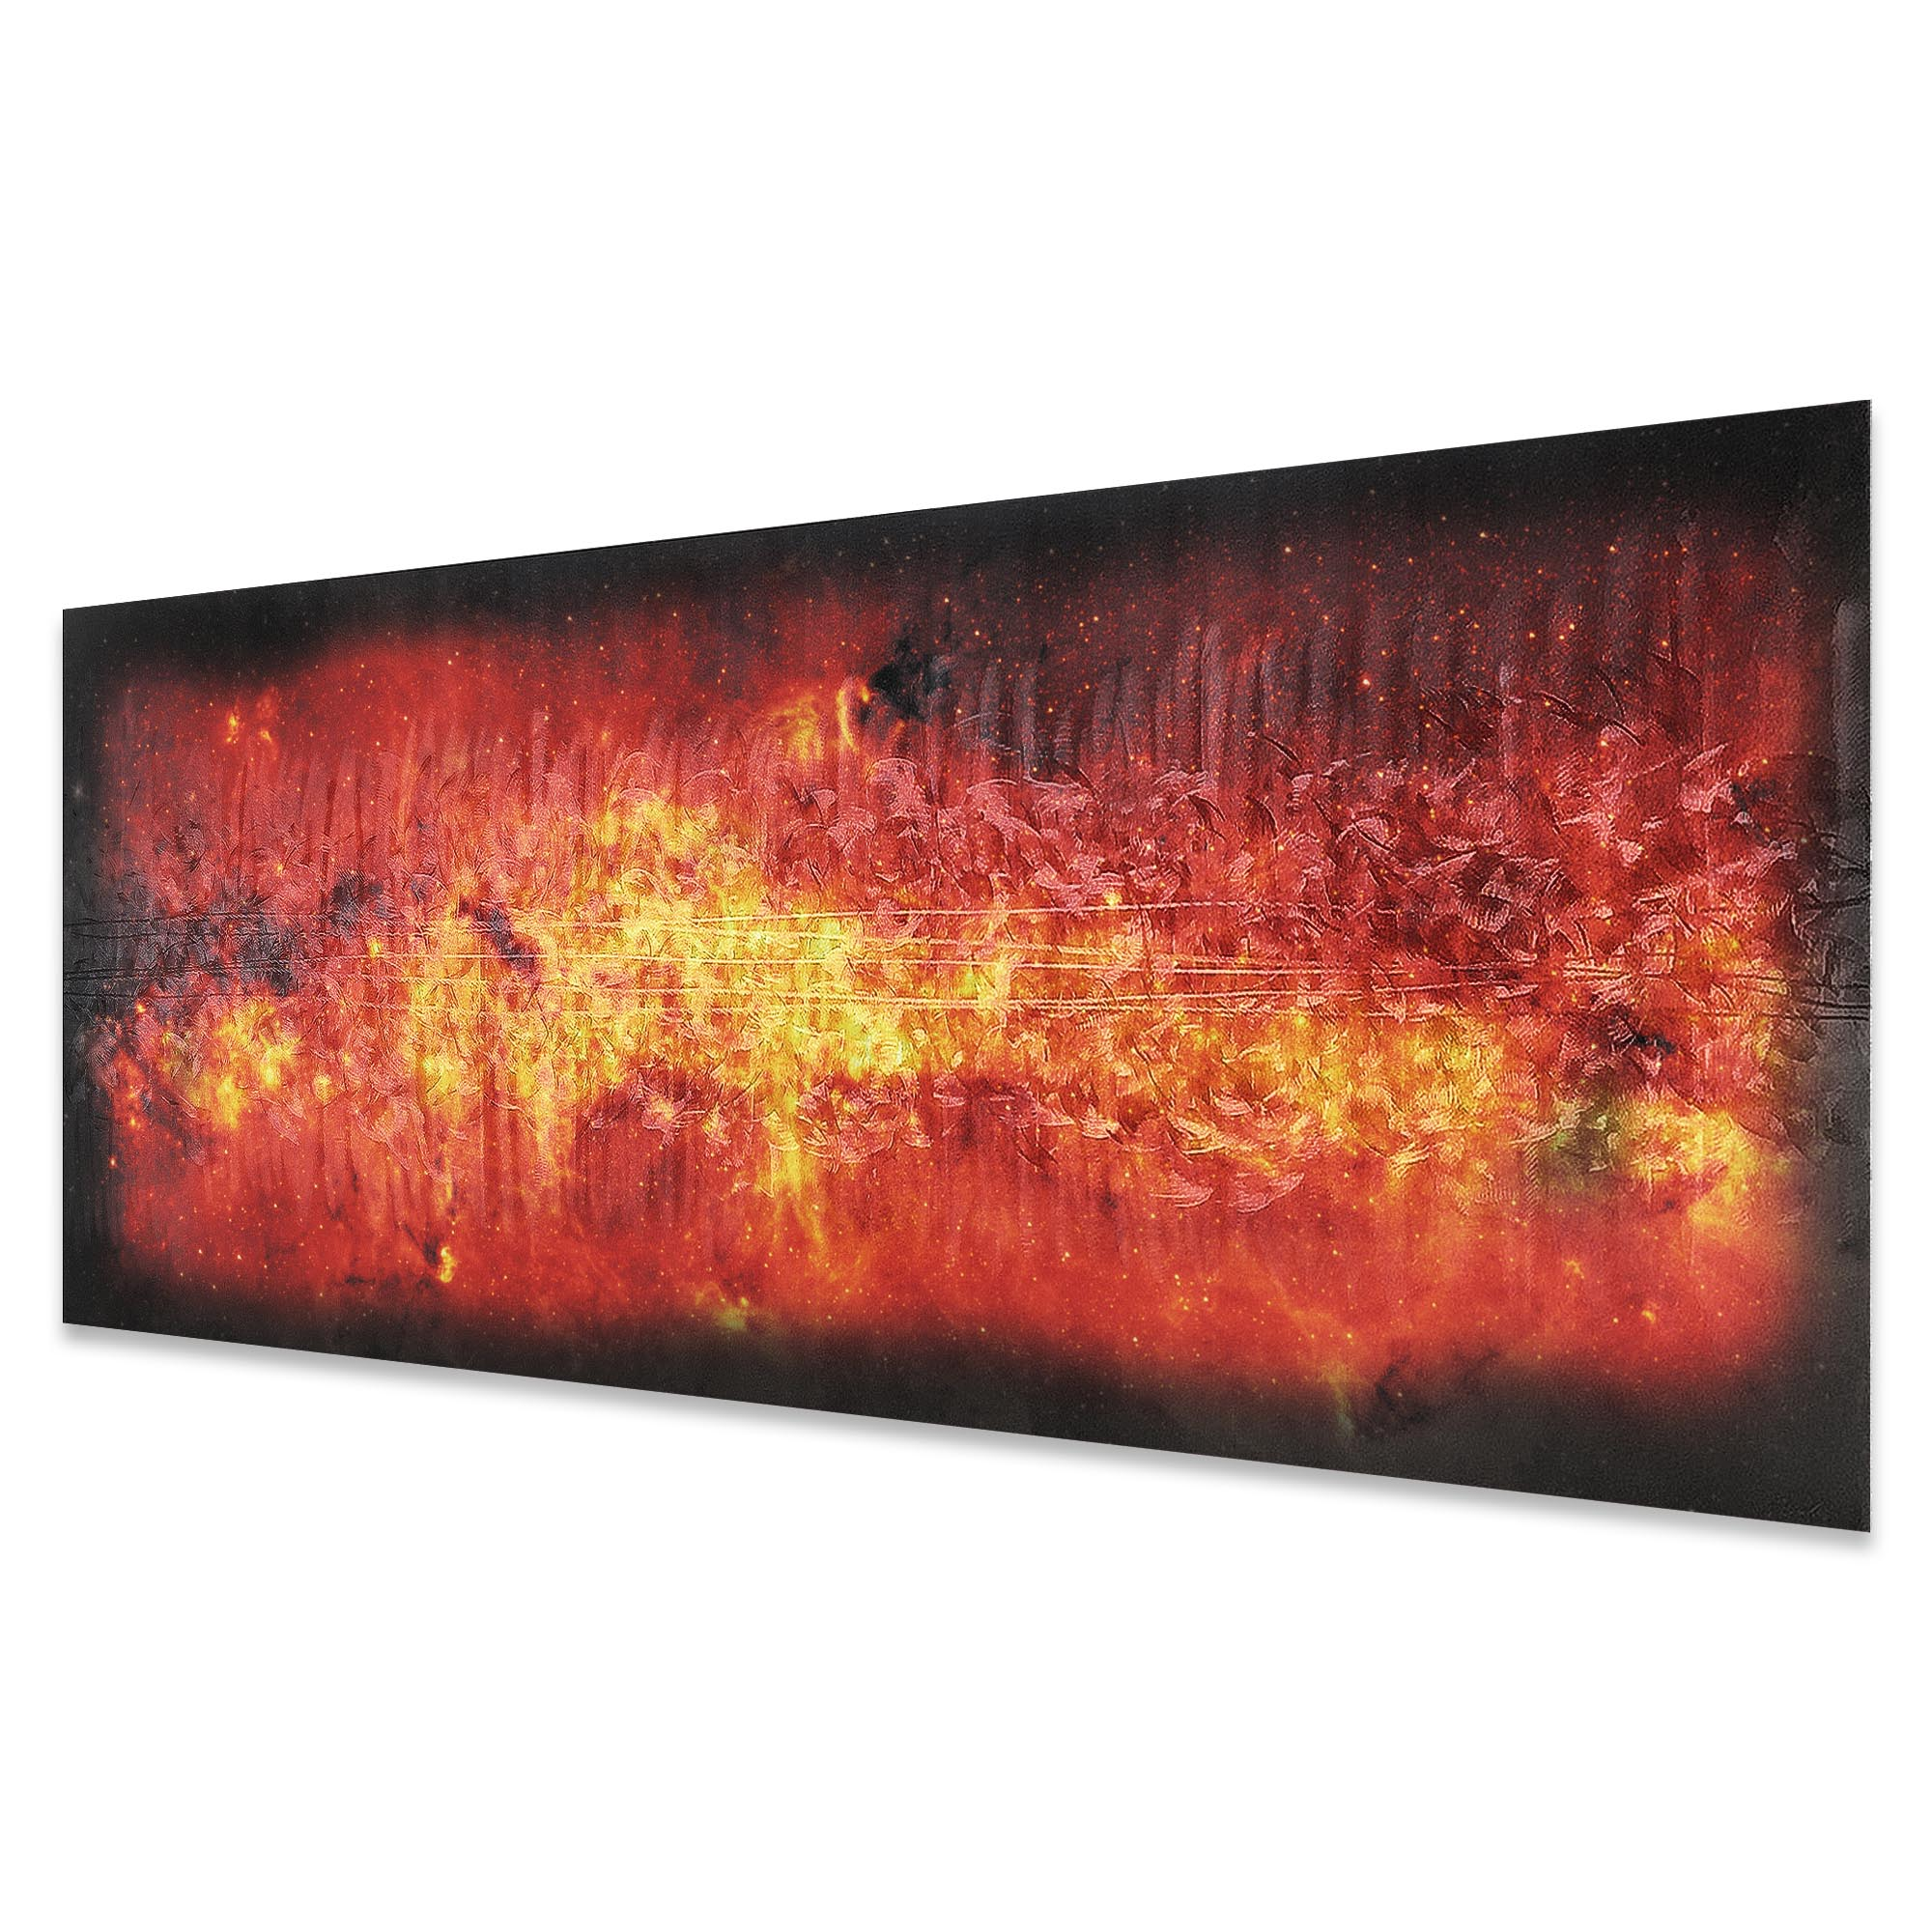 Milky Way Flame by Helena Martin - Original Abstract Art on Ground and Colored Metal - Image 2